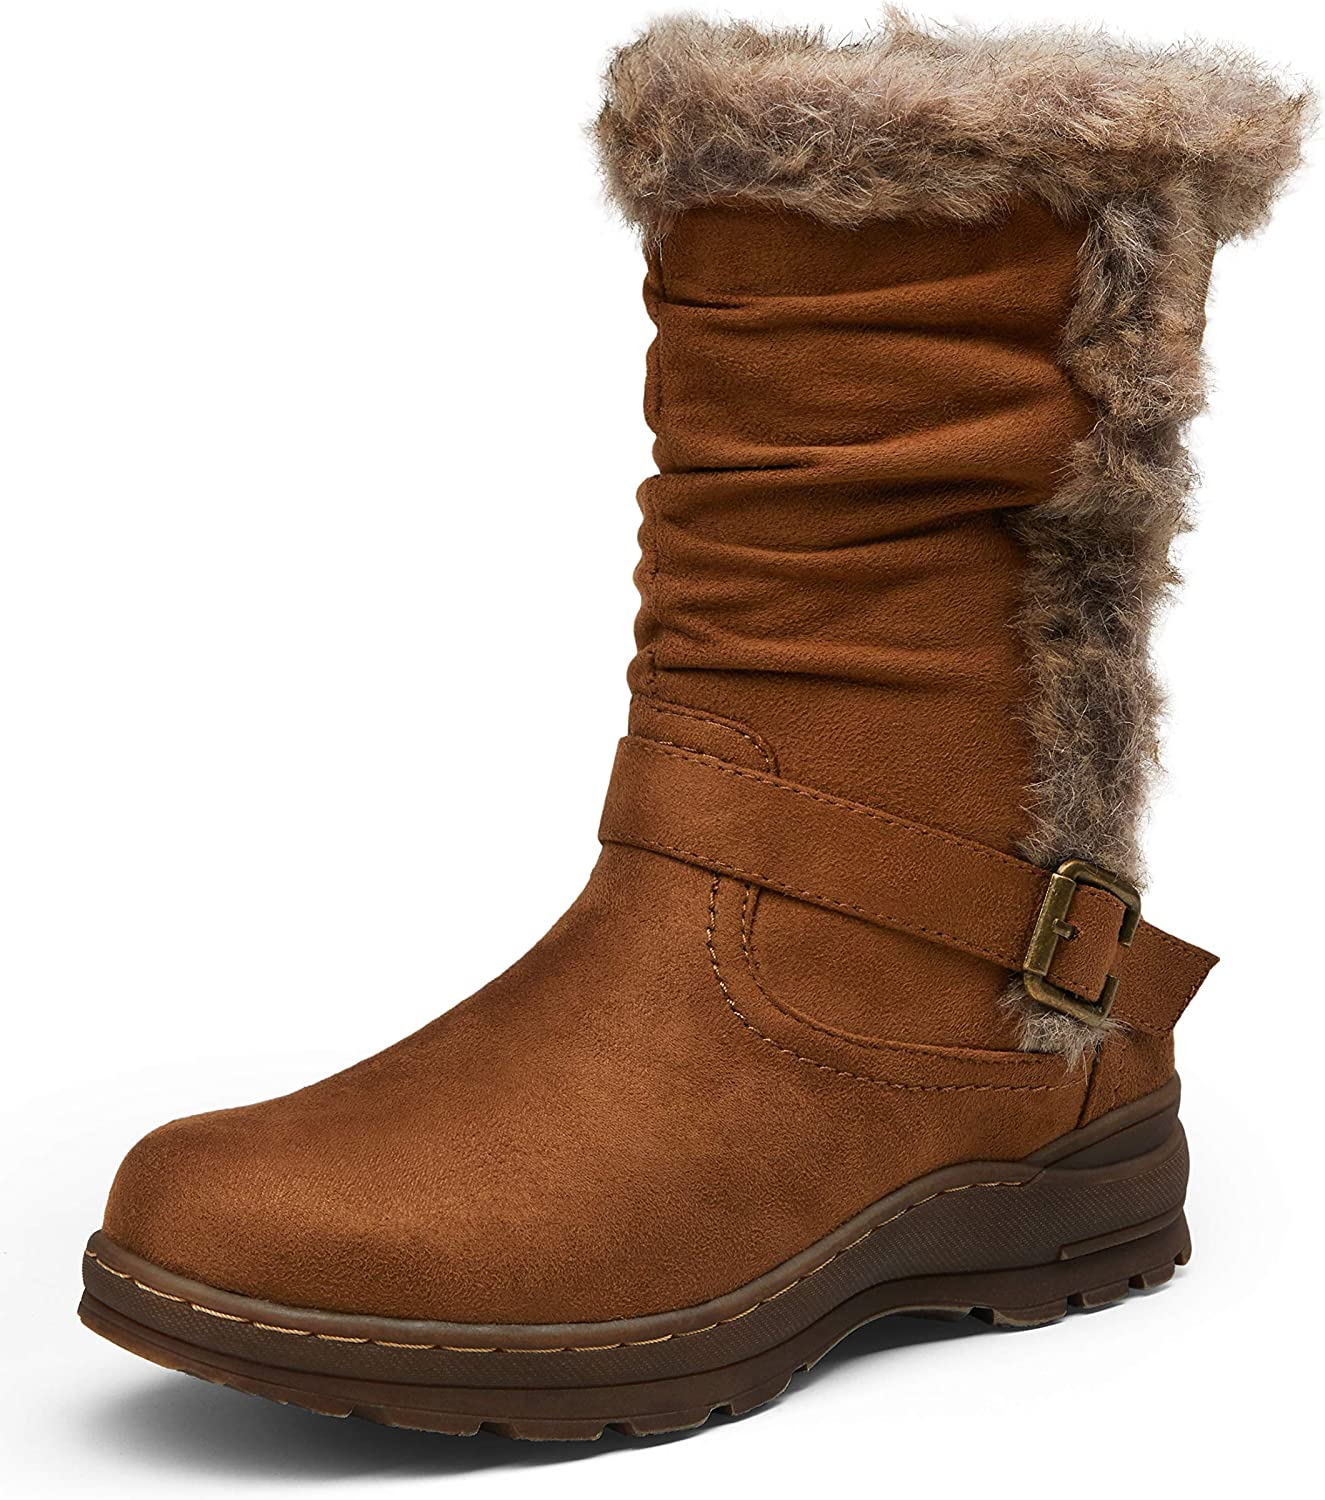 Vepose Women's Mid Calf Boots Suede Slouch Snow Booties Winter Shoes Outdoor